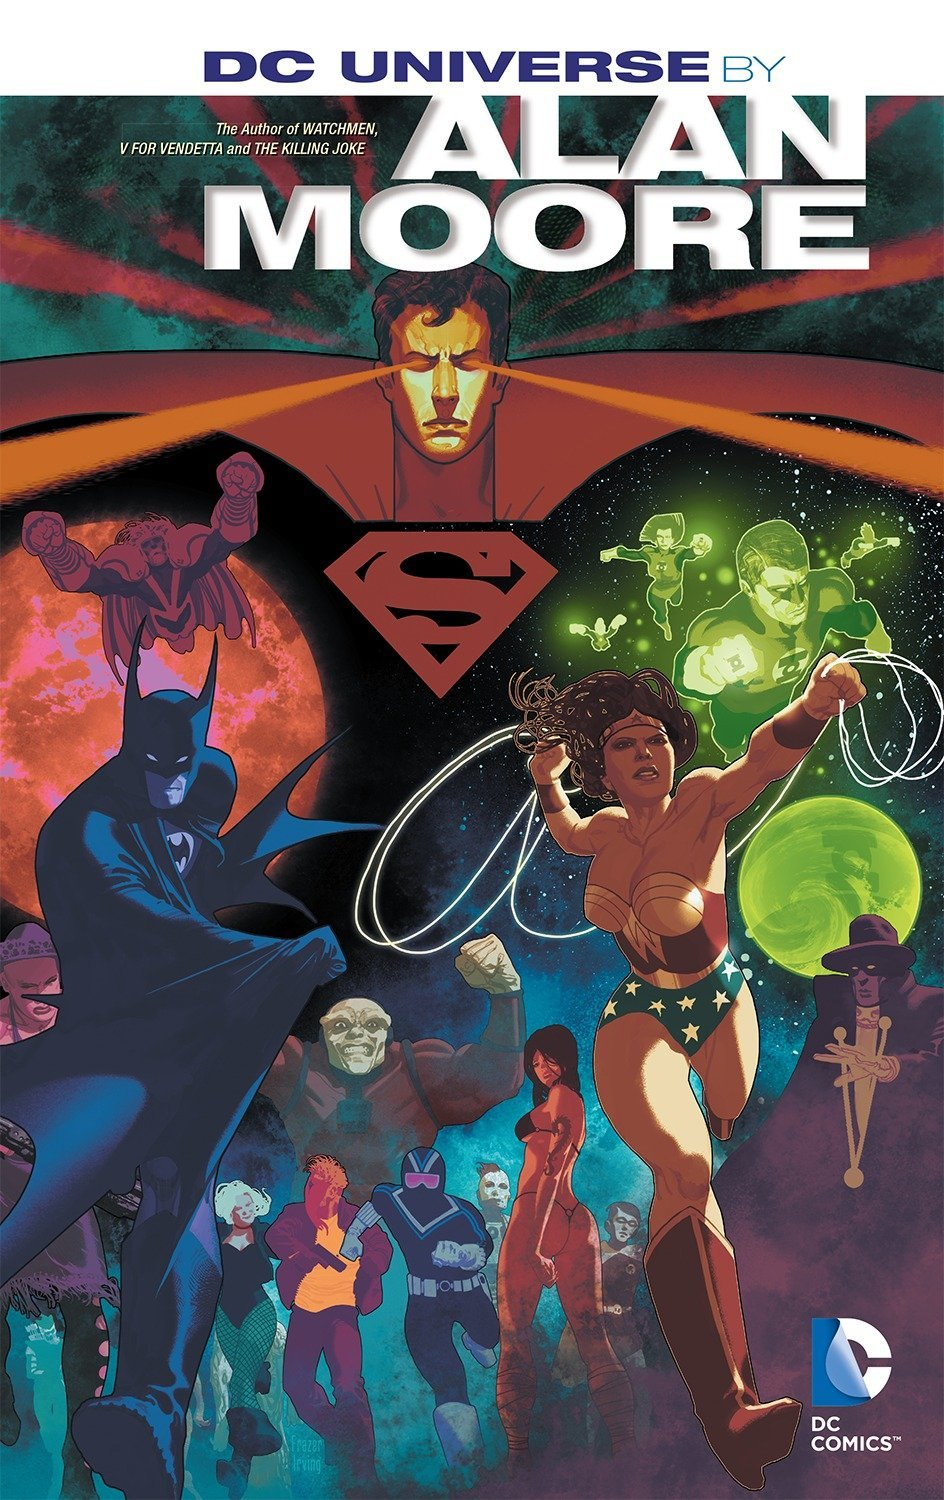 DC Universe by Alan Moore [Paperback]